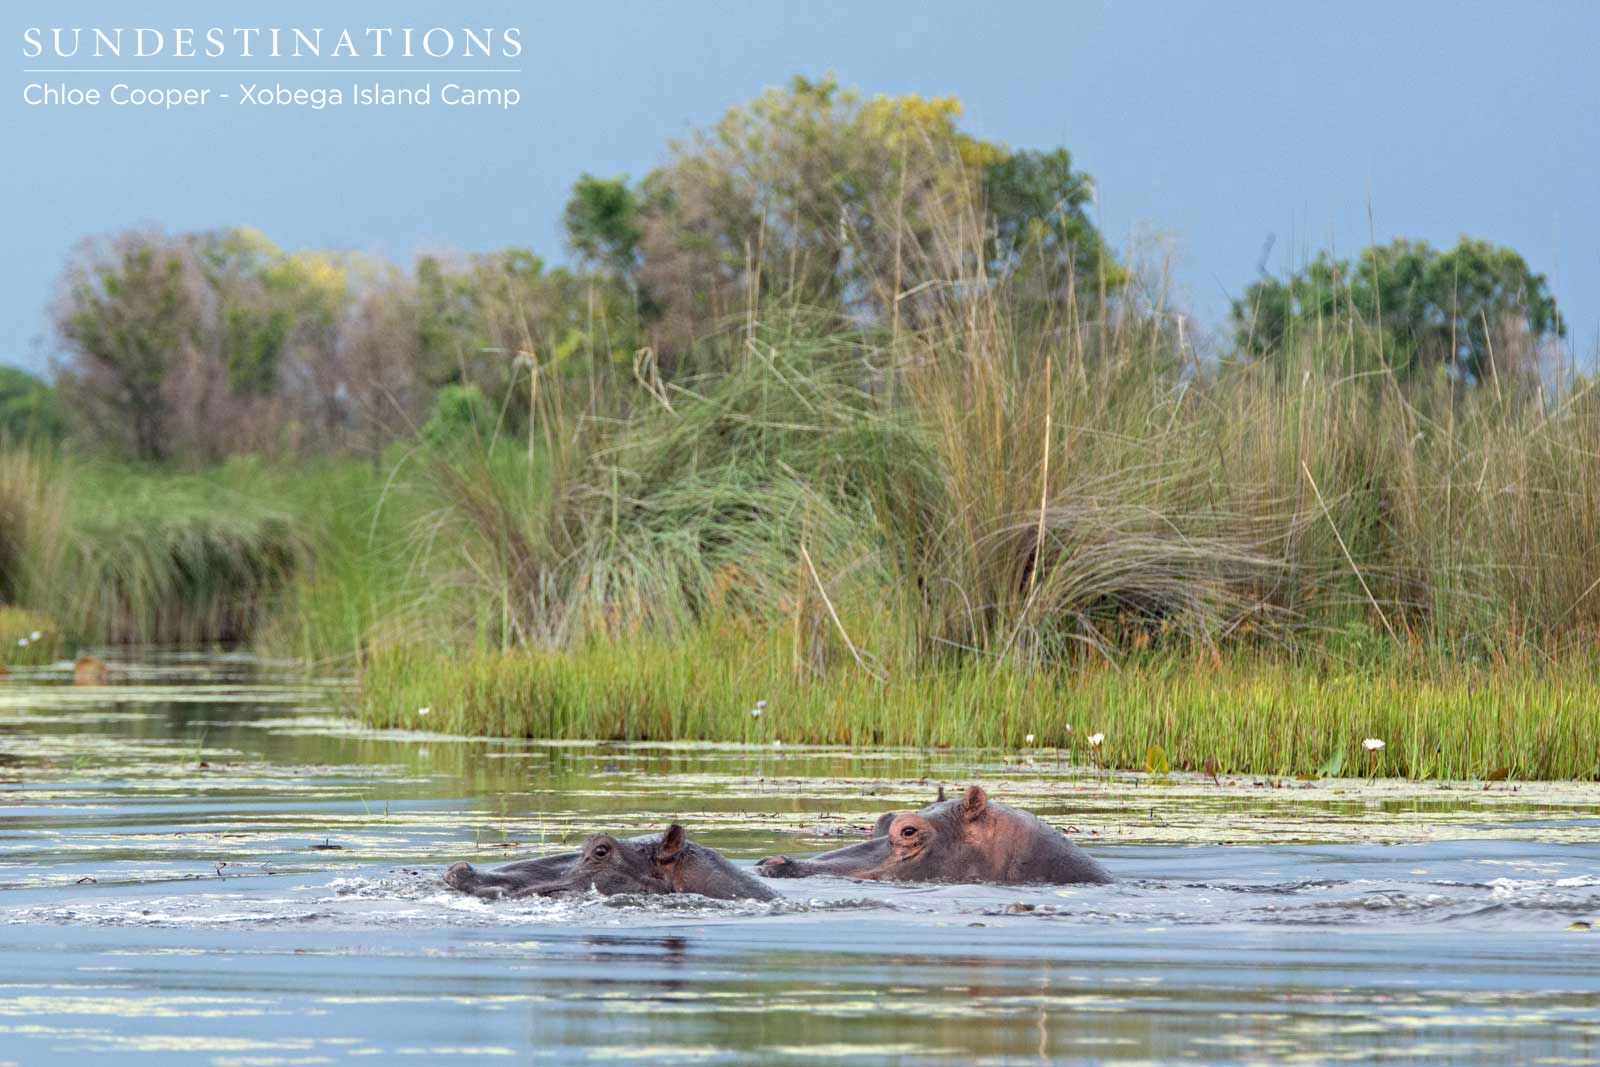 Watching Clumsy Hippos Mate While on a Xobega Boat Cruise